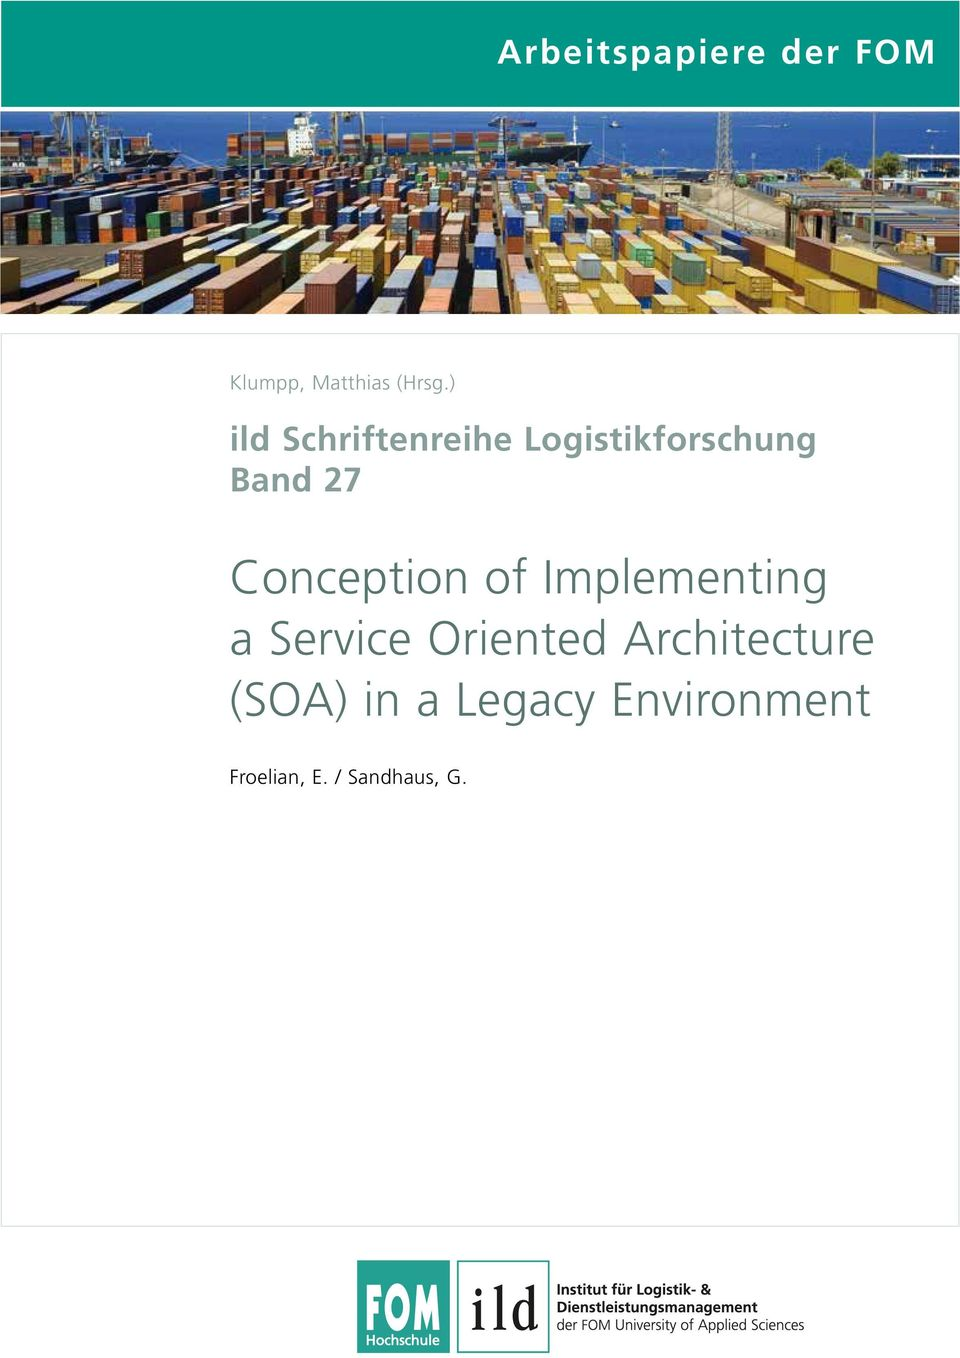 Conception of Implementing a Service Oriented